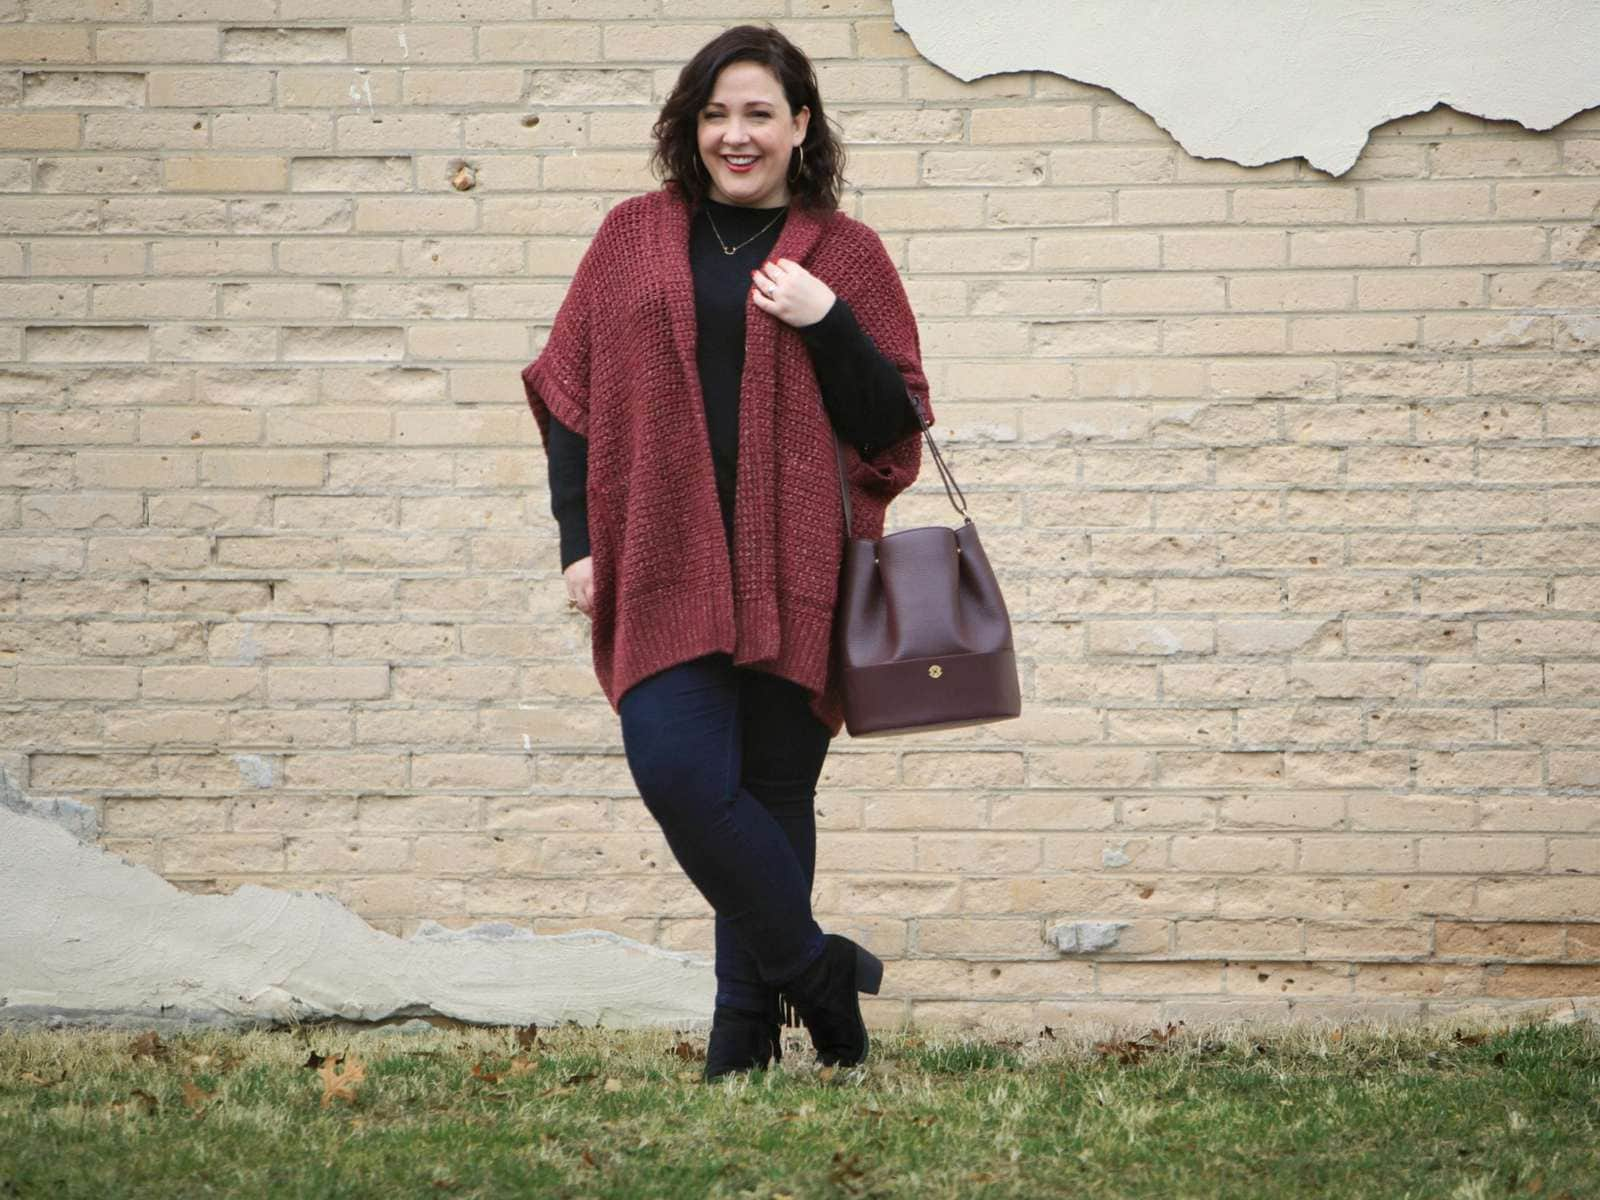 Wardrobe Oxygen,, over 40 blogger wearing a Melissa McCarthy Seven7 cardigan and Dagne Dover oxblood leather bucket bag